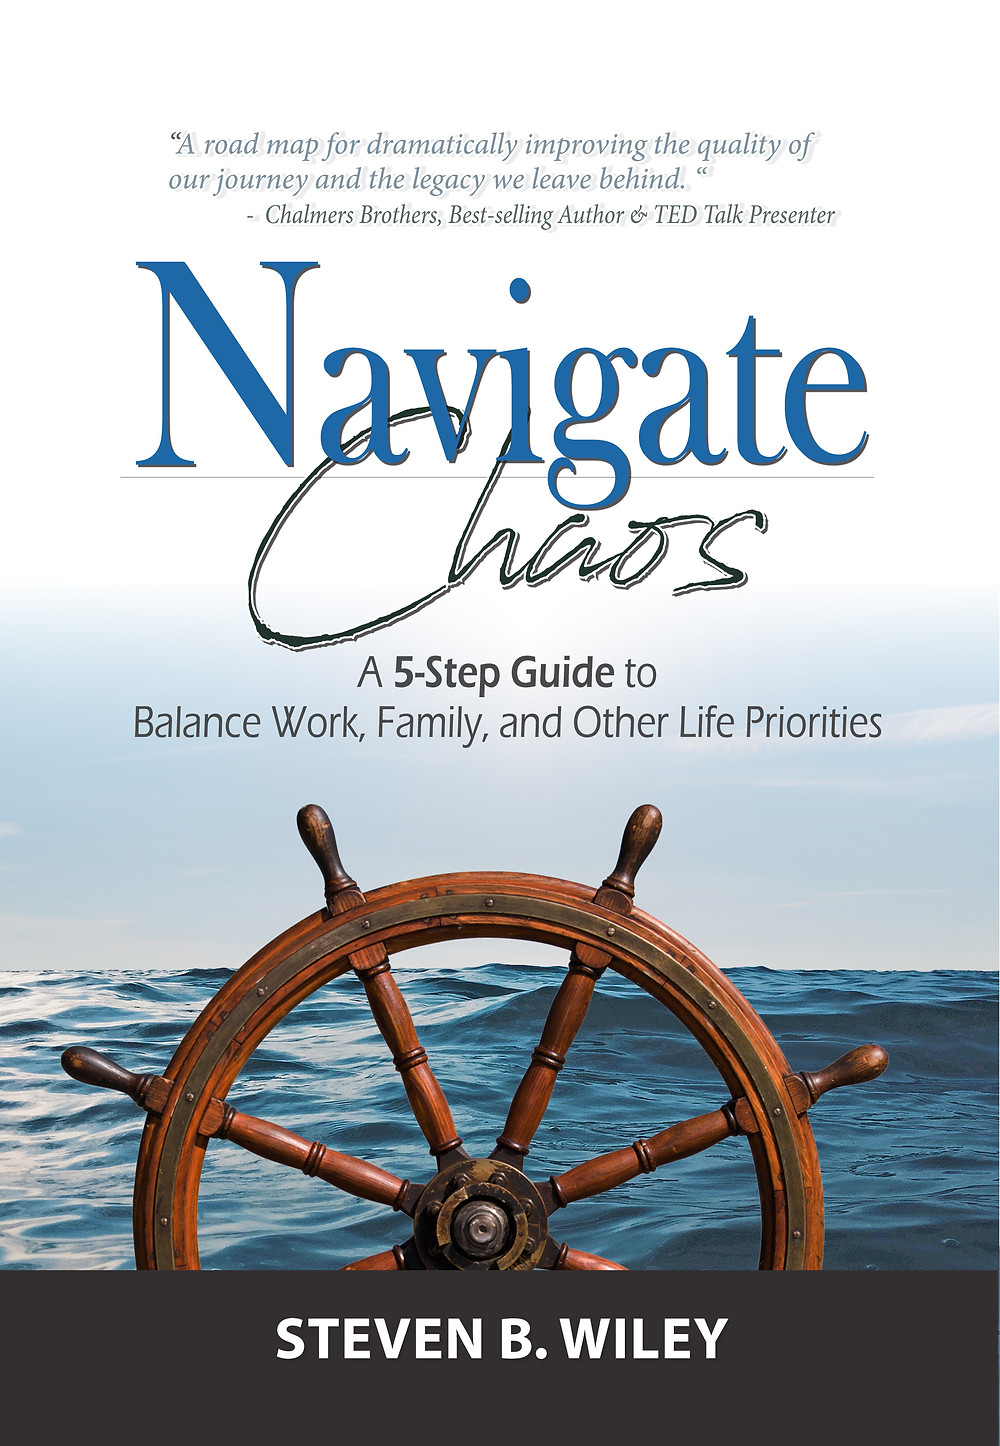 Book Cover for Navigate Chaos: A 5-Step Guide to Balance Work, Family, and Other Life Priorities